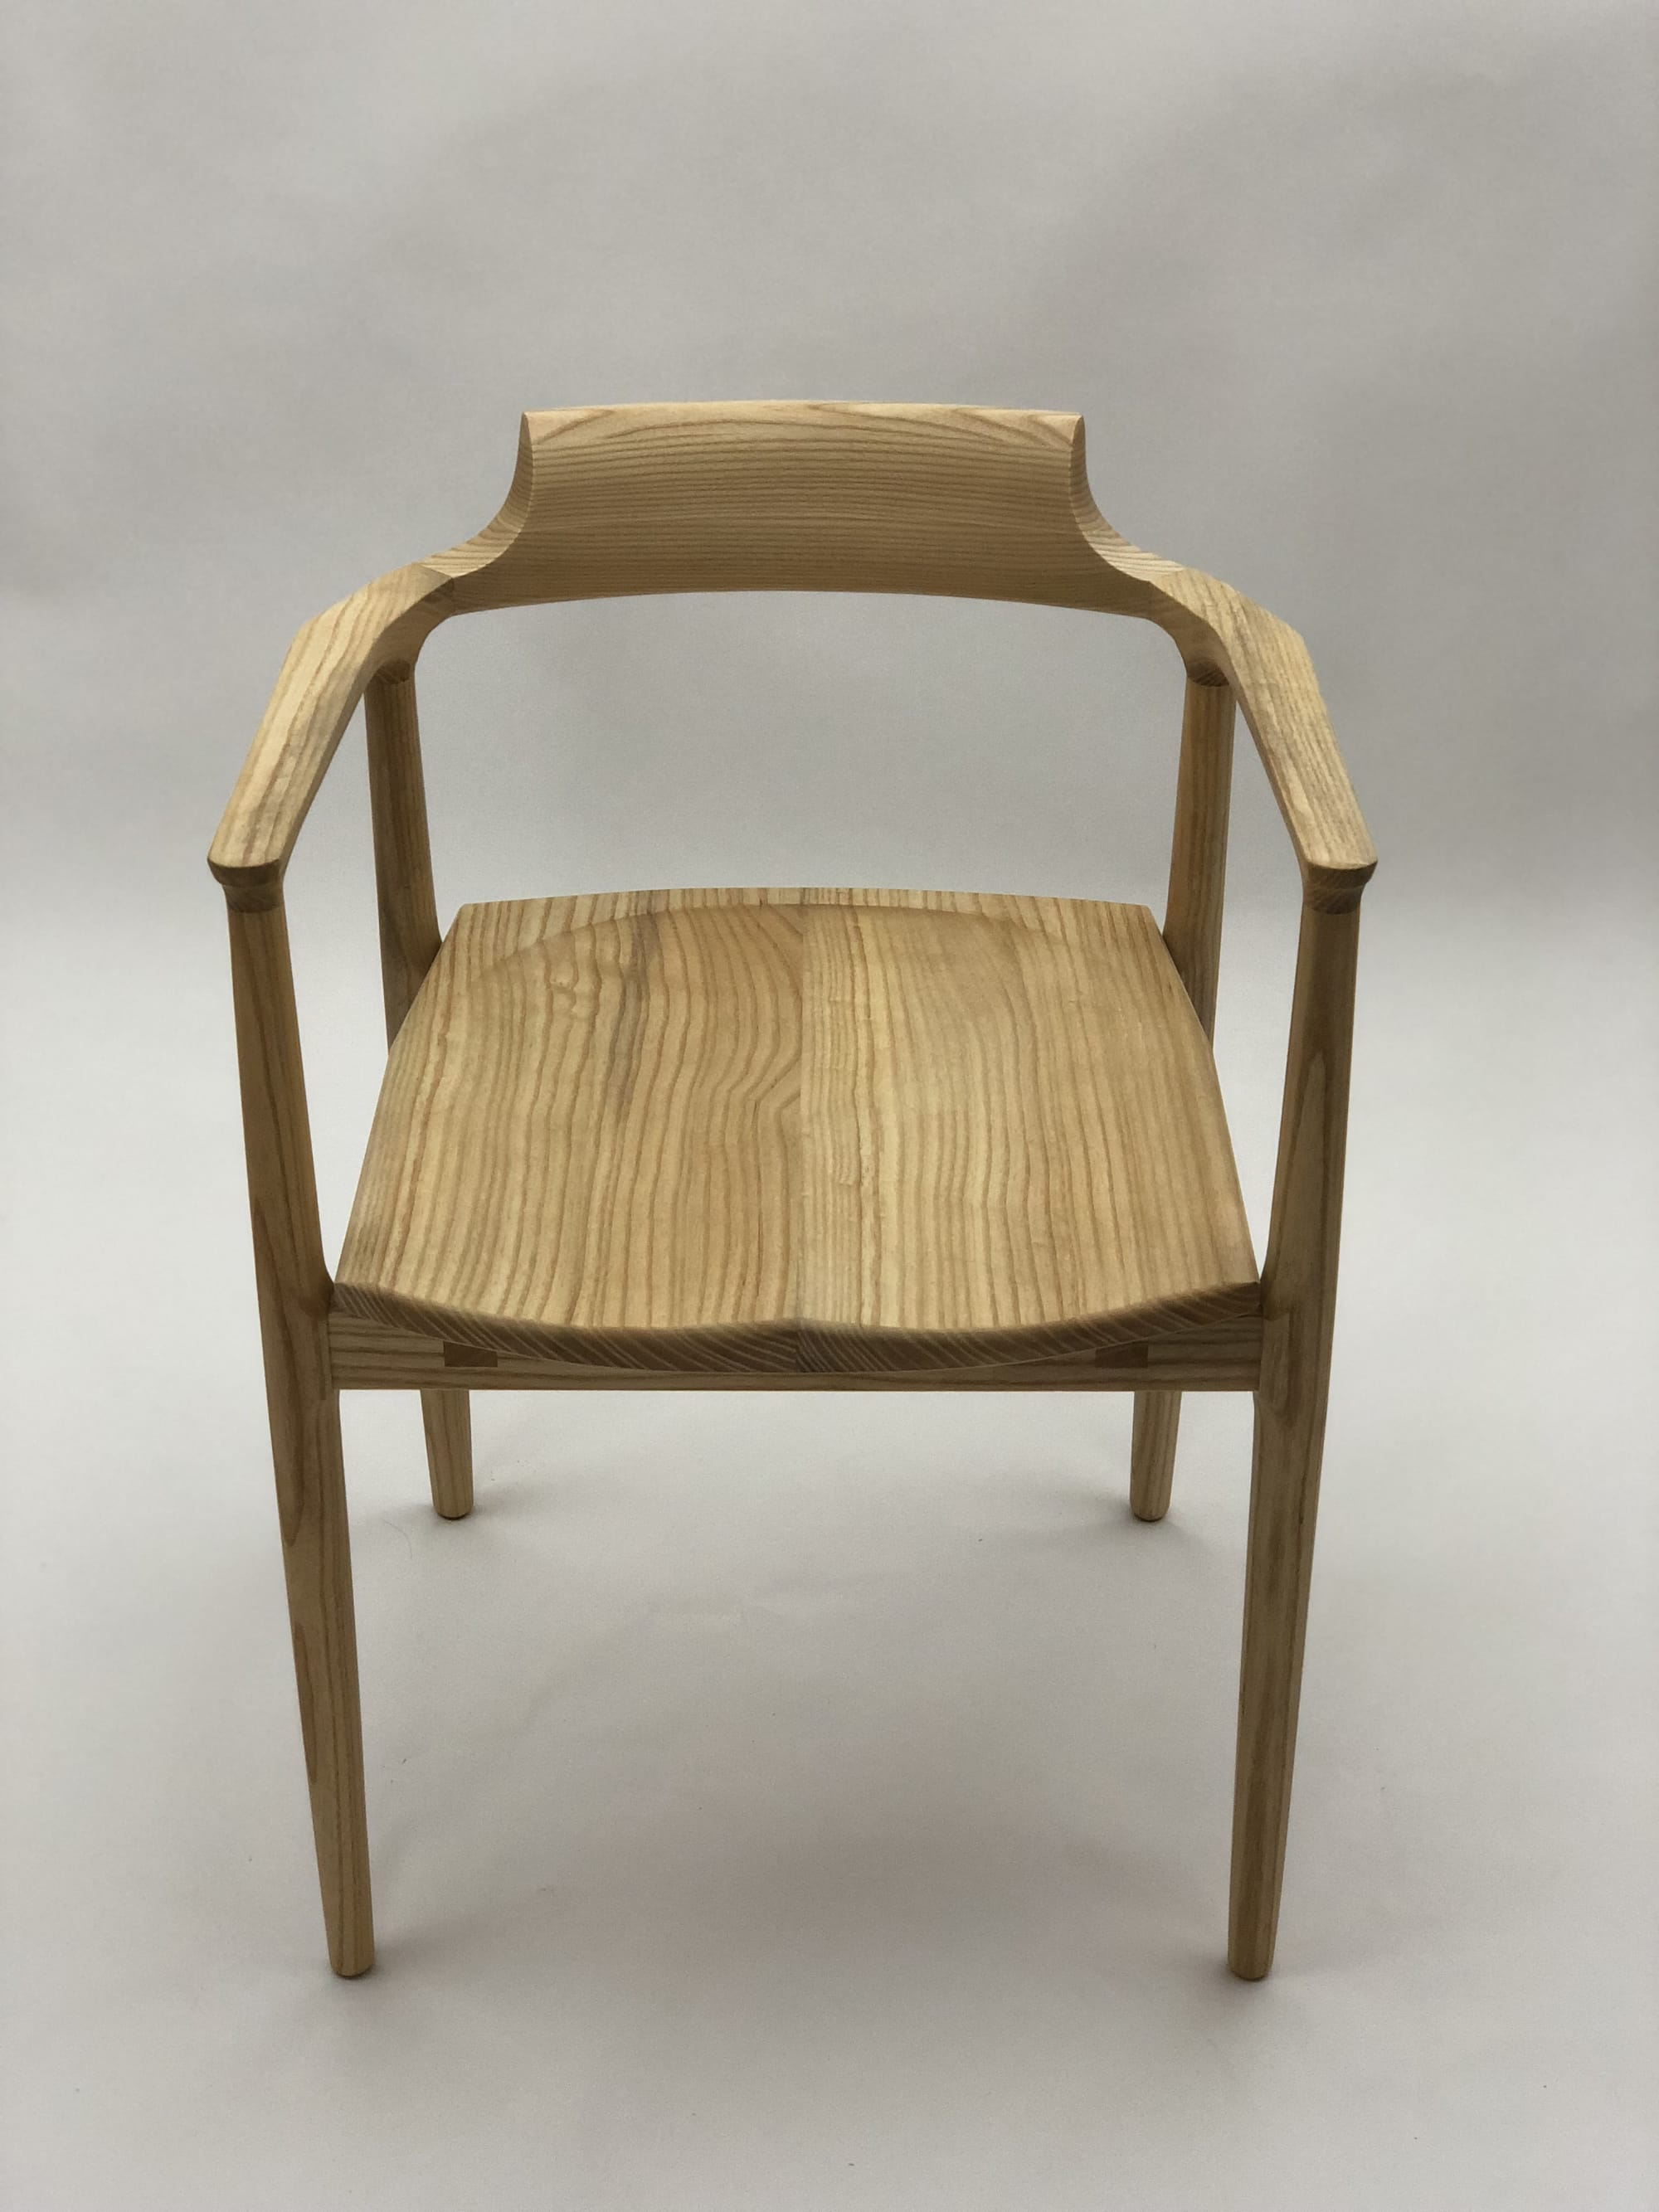 Chairs by Brian Holcombe Woodworker seen at Princeton, NJ, Princeton - Henry The Armchair